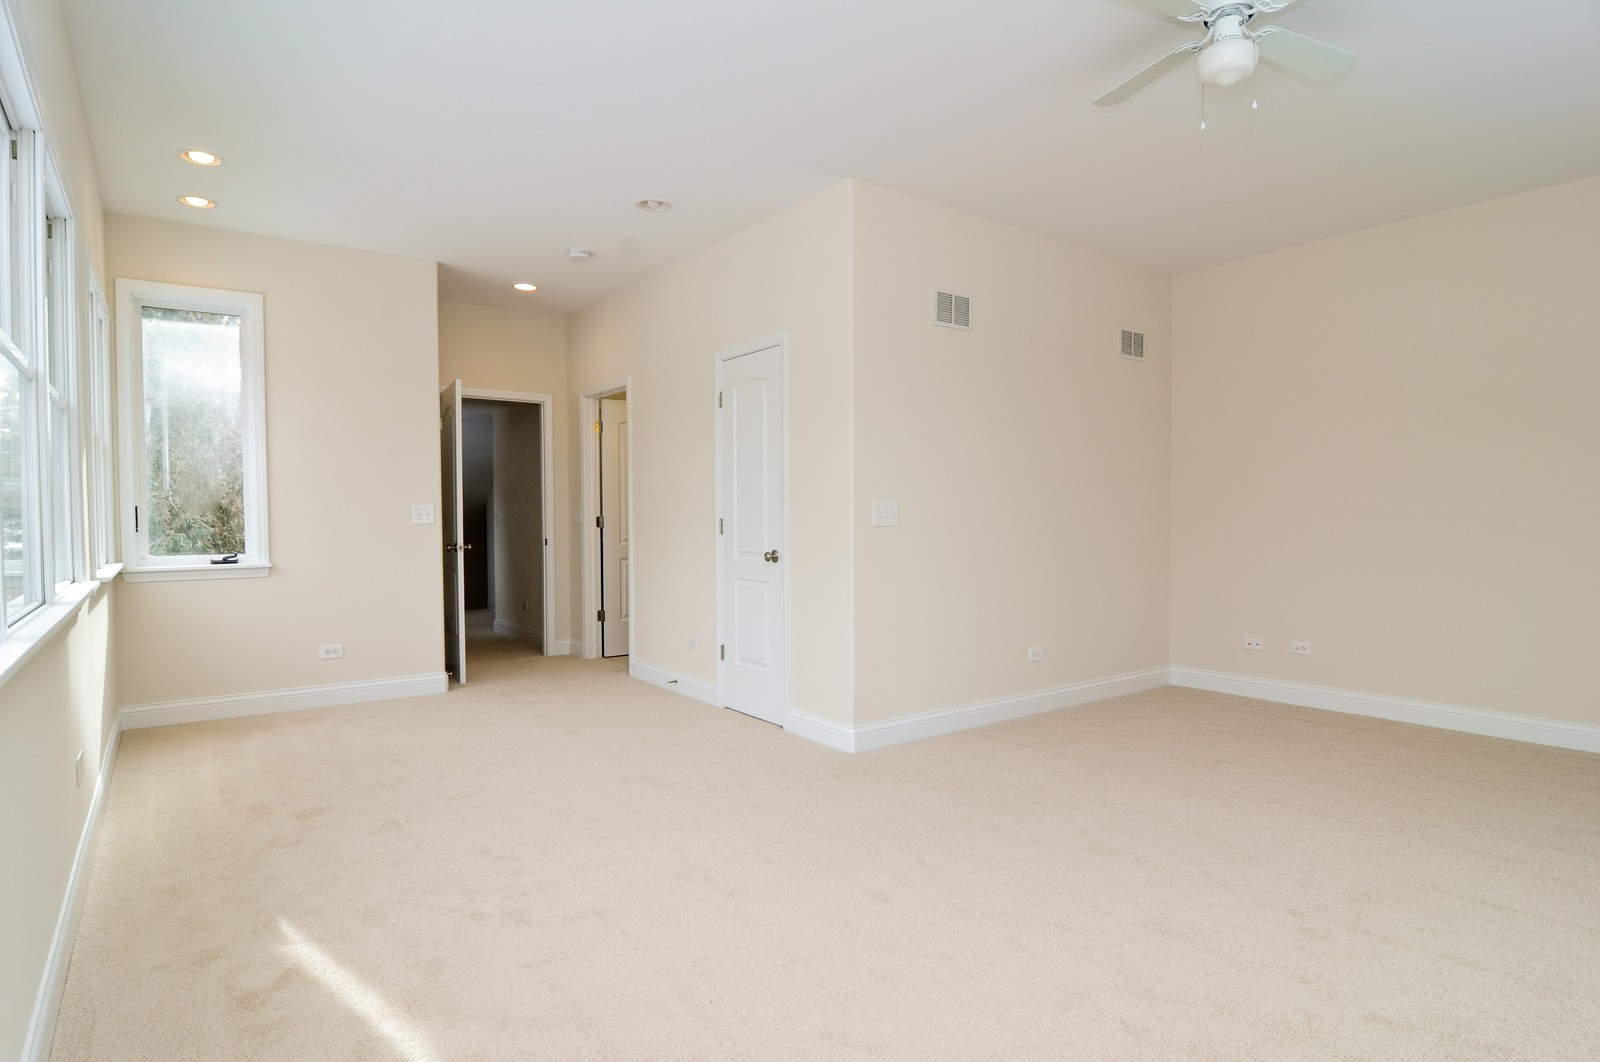 Real Estate Photography - 109 N River Rd, Fox River Grove, IL, 60021 - Master Bedroom